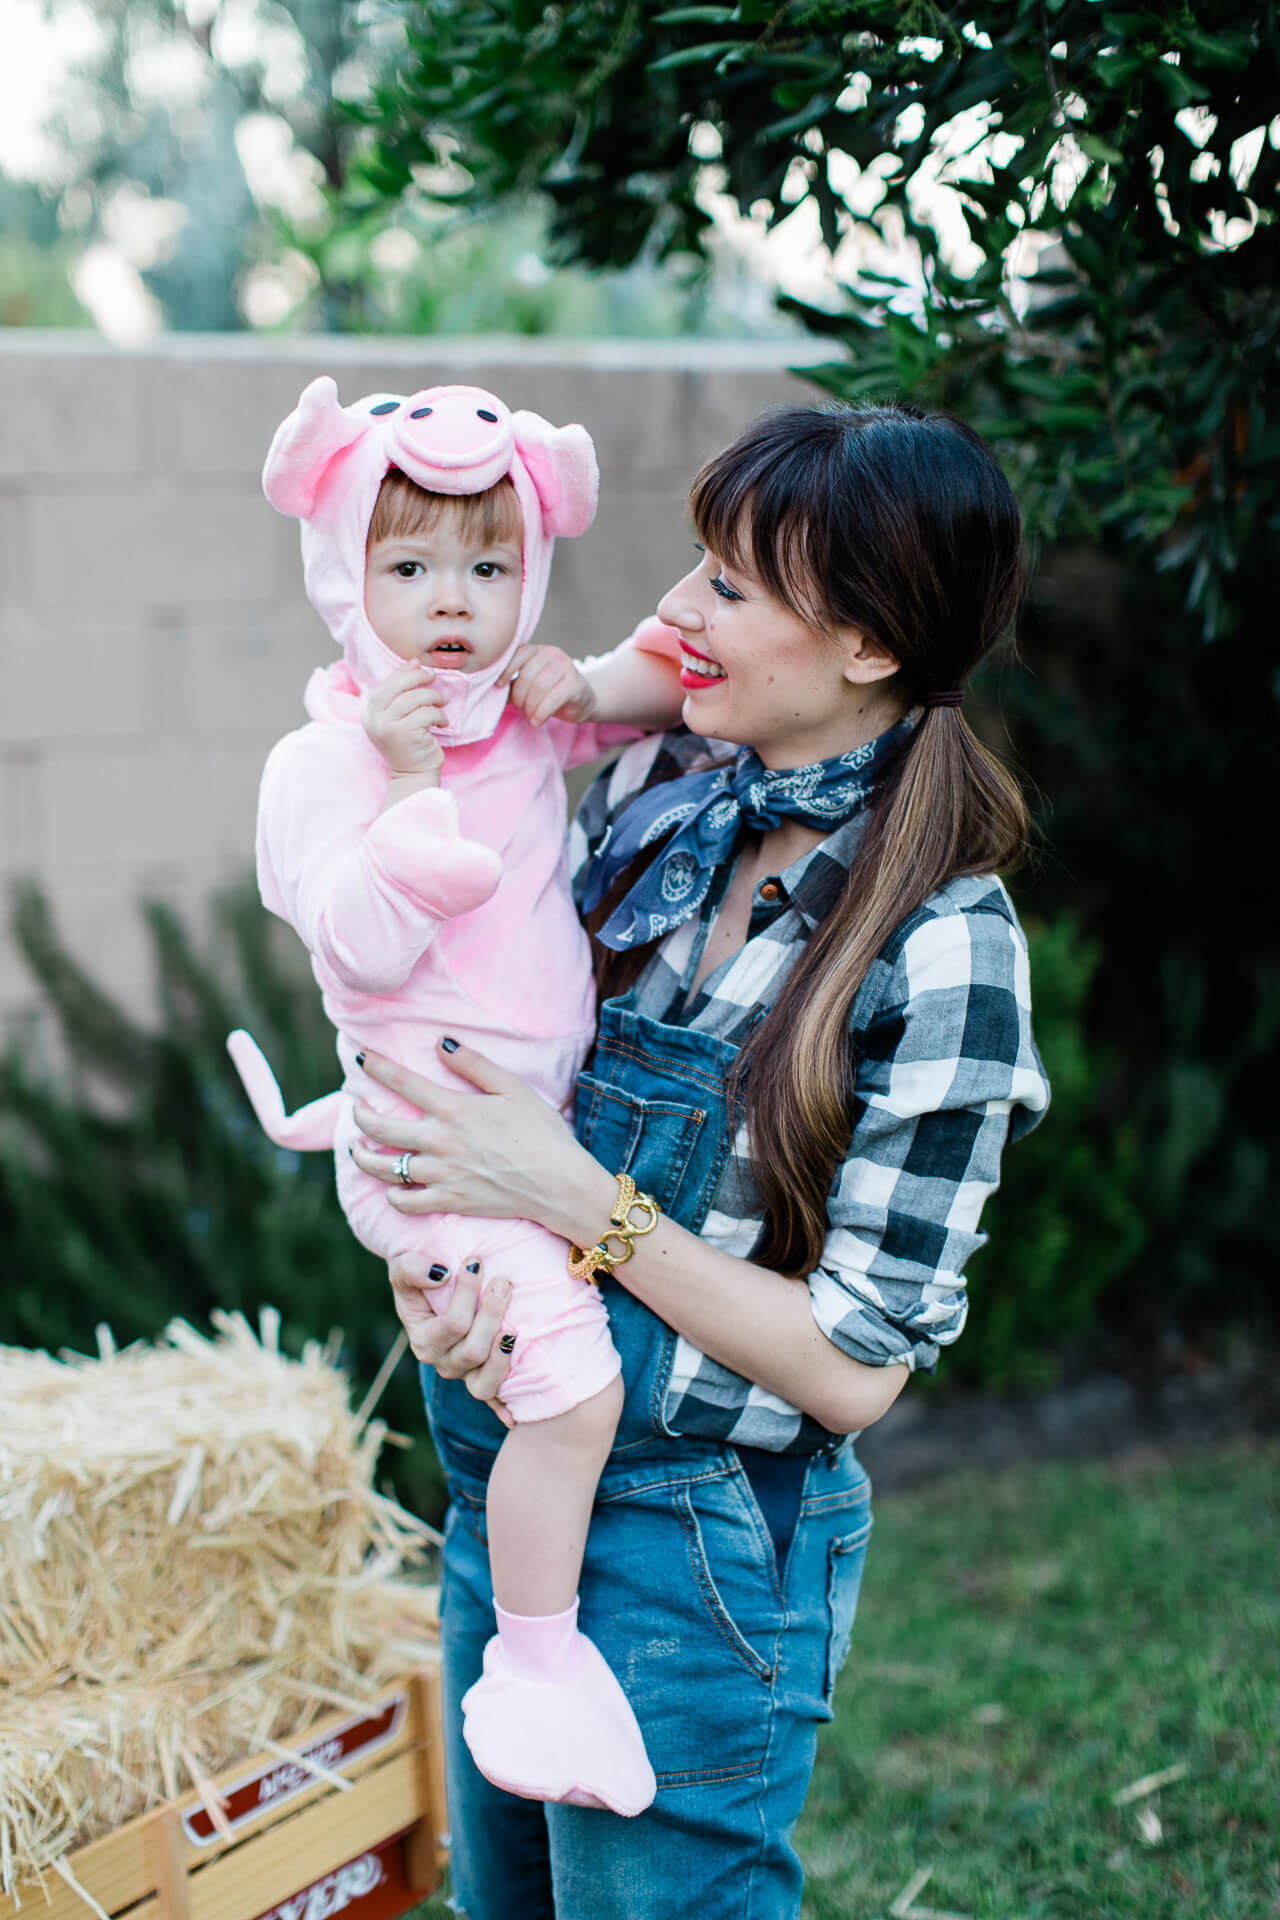 A farmer and pig Halloween costume. - M Loves M @marmar